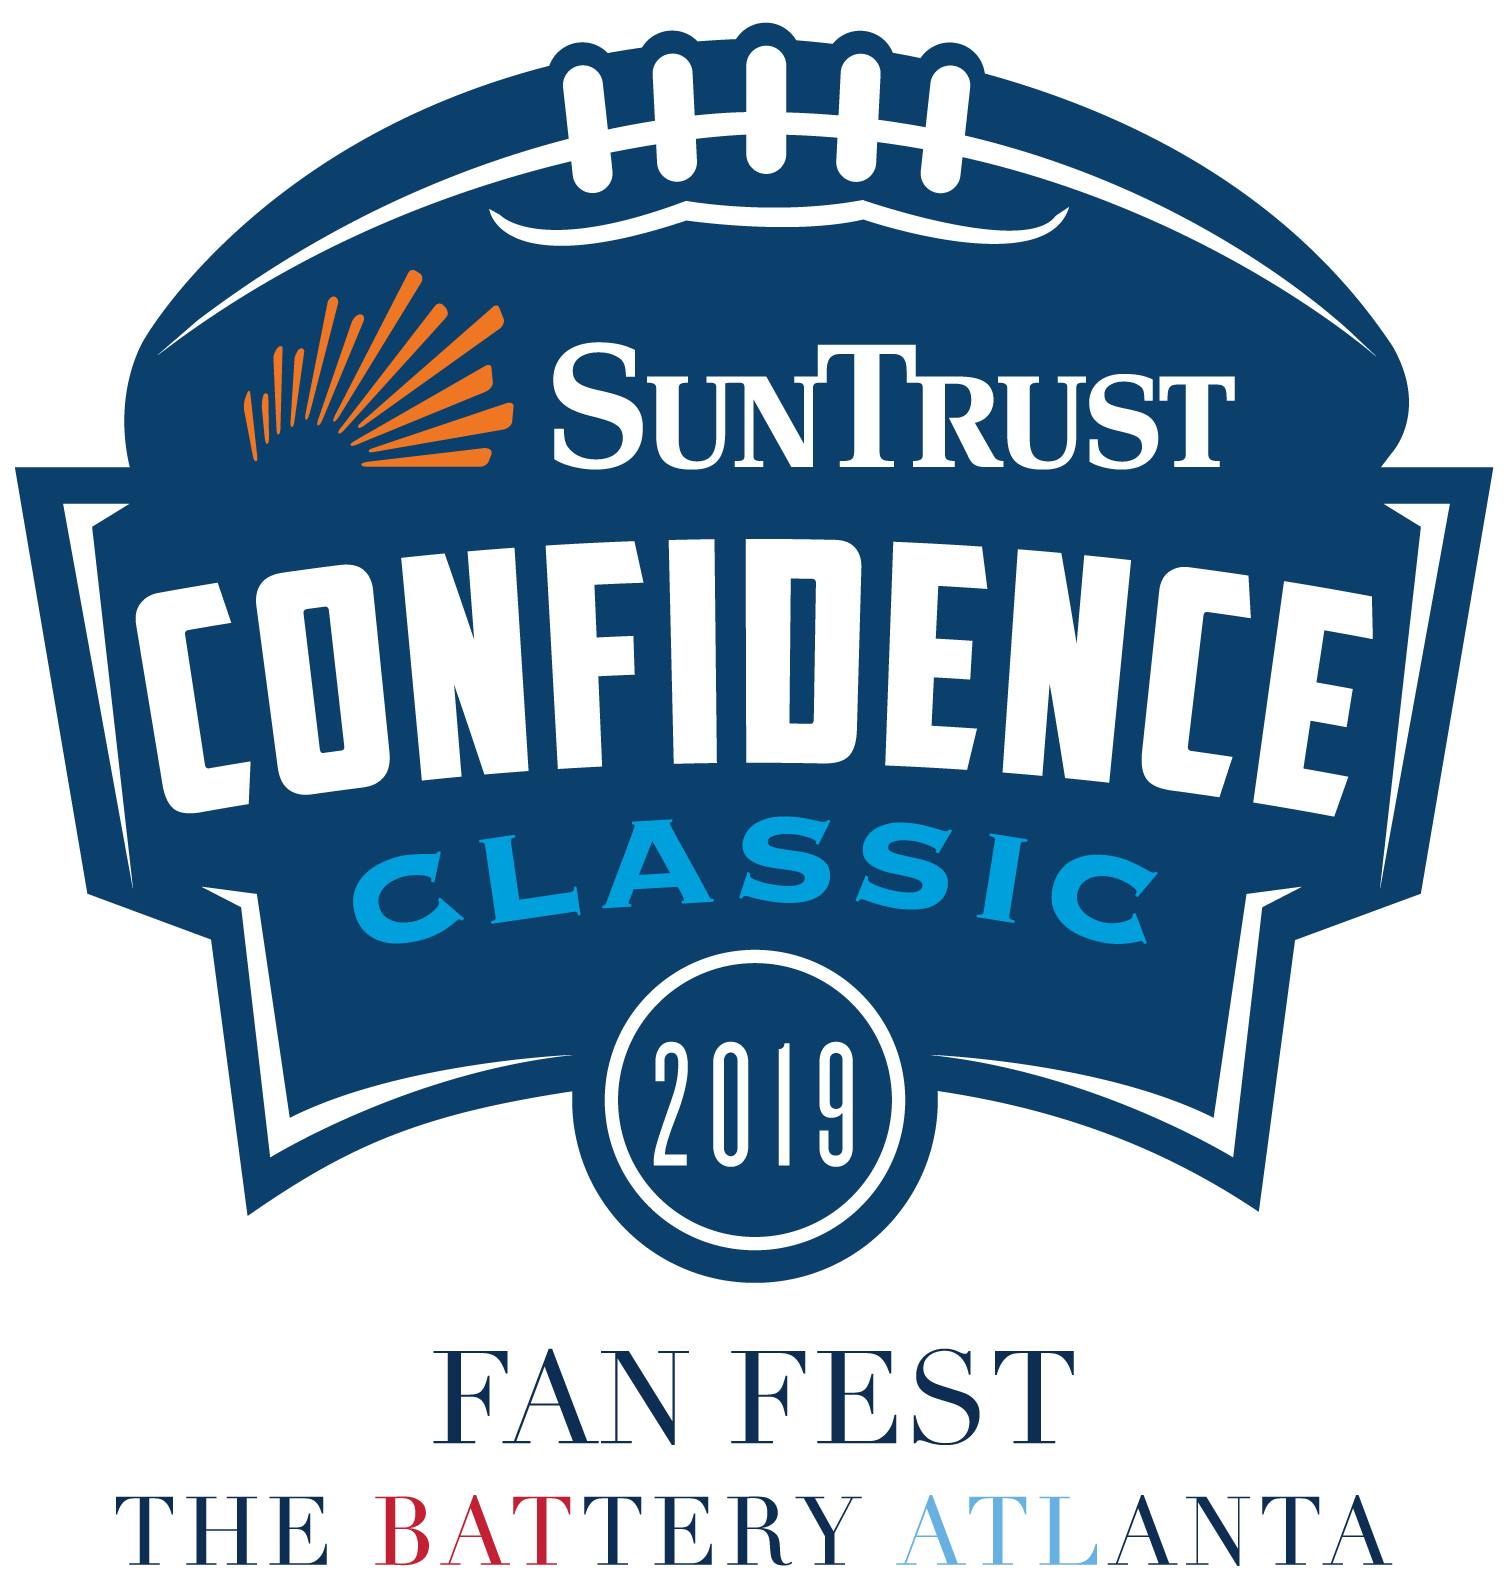 Head to Fan Fest at the Battery Atlanta This Weekend